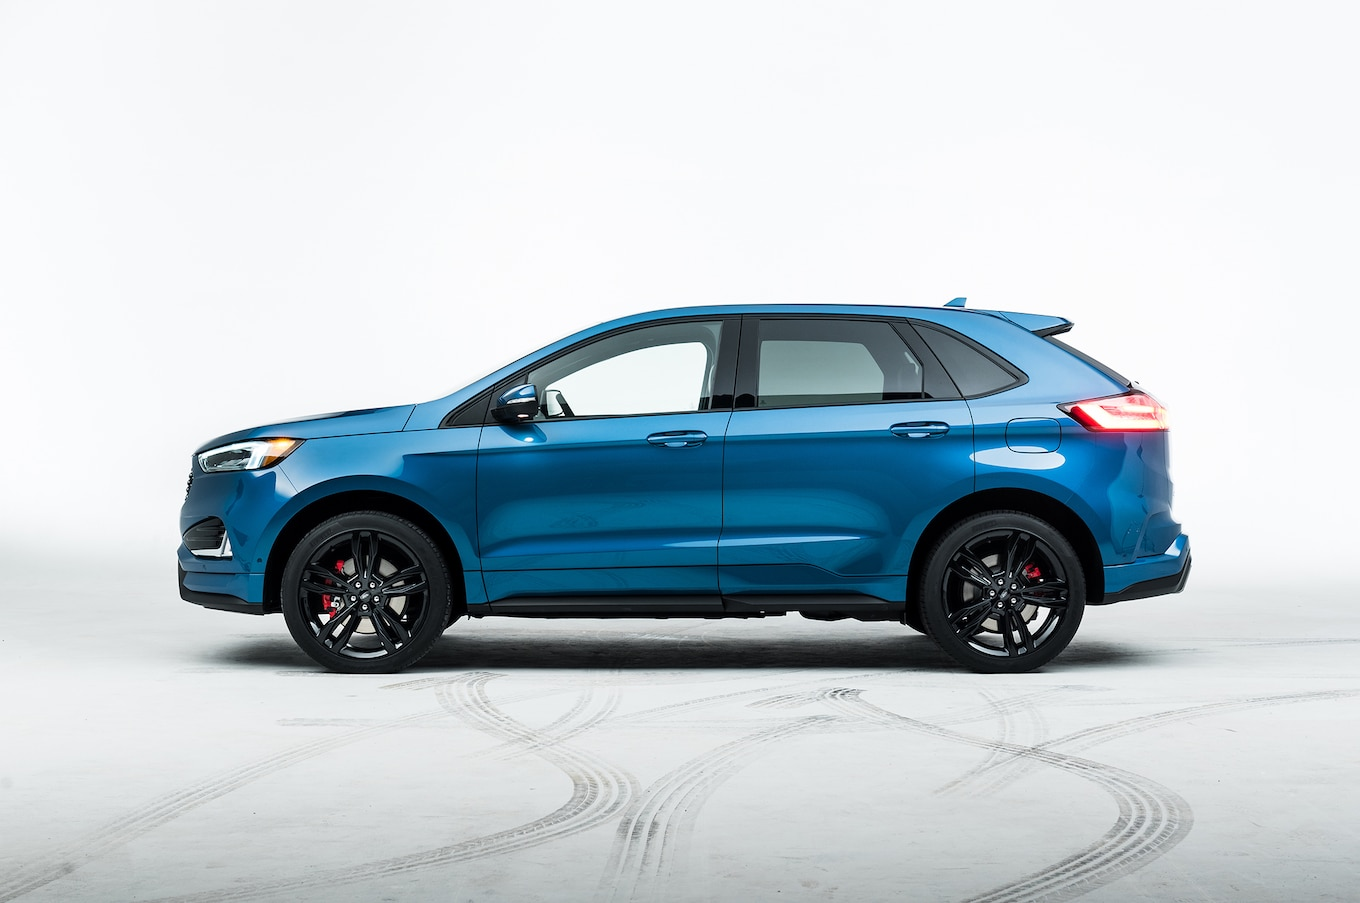 hight resolution of 2019 ford edge st first look first performance suv motor trend 2007 lincoln mkx engine diagram 2011 ford edge engine diagram colored